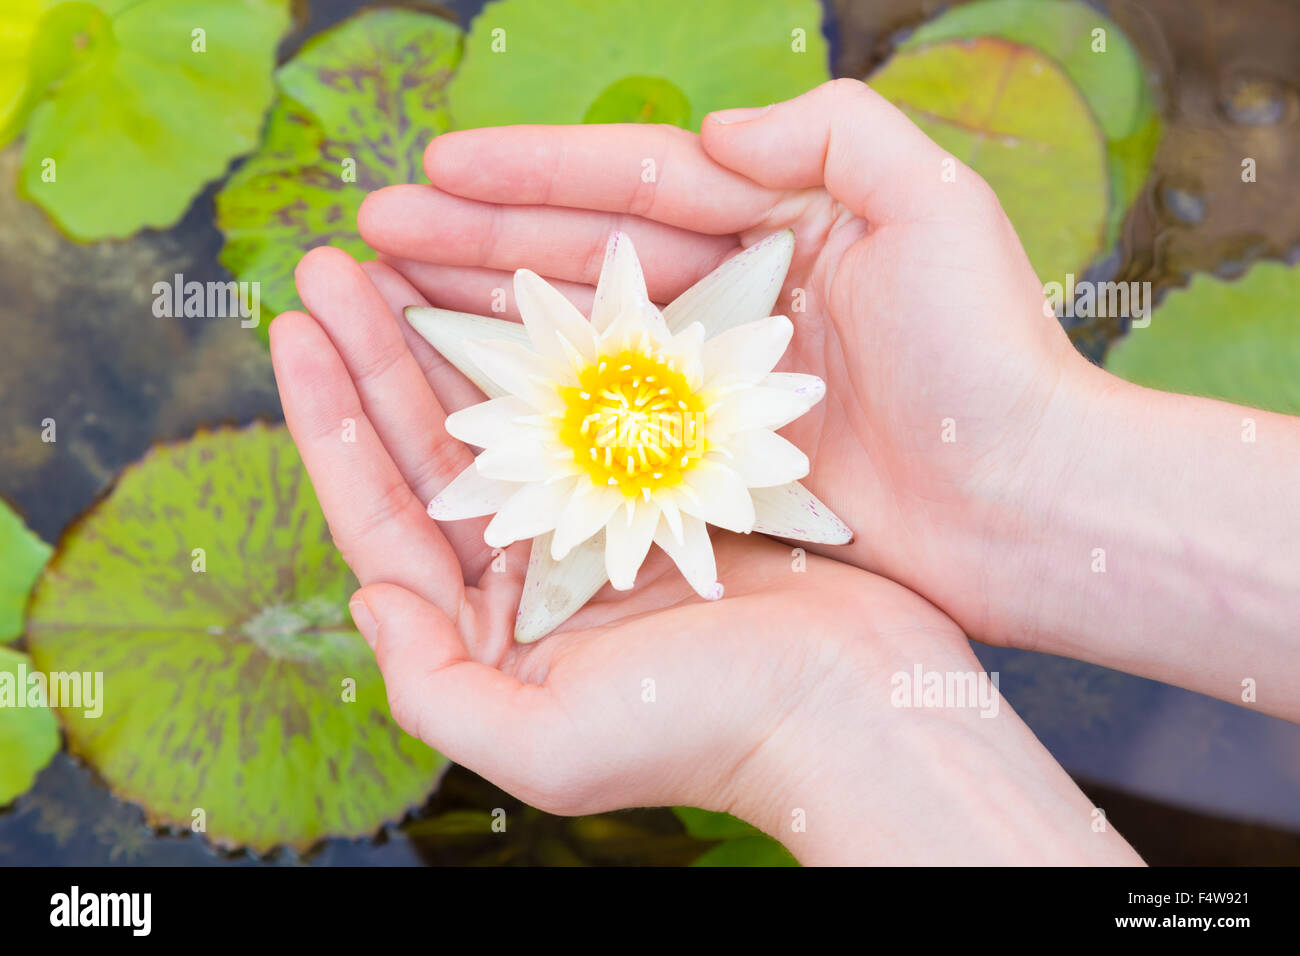 Hands Holding Lotus Flower Stock Photos Hands Holding Lotus Flower